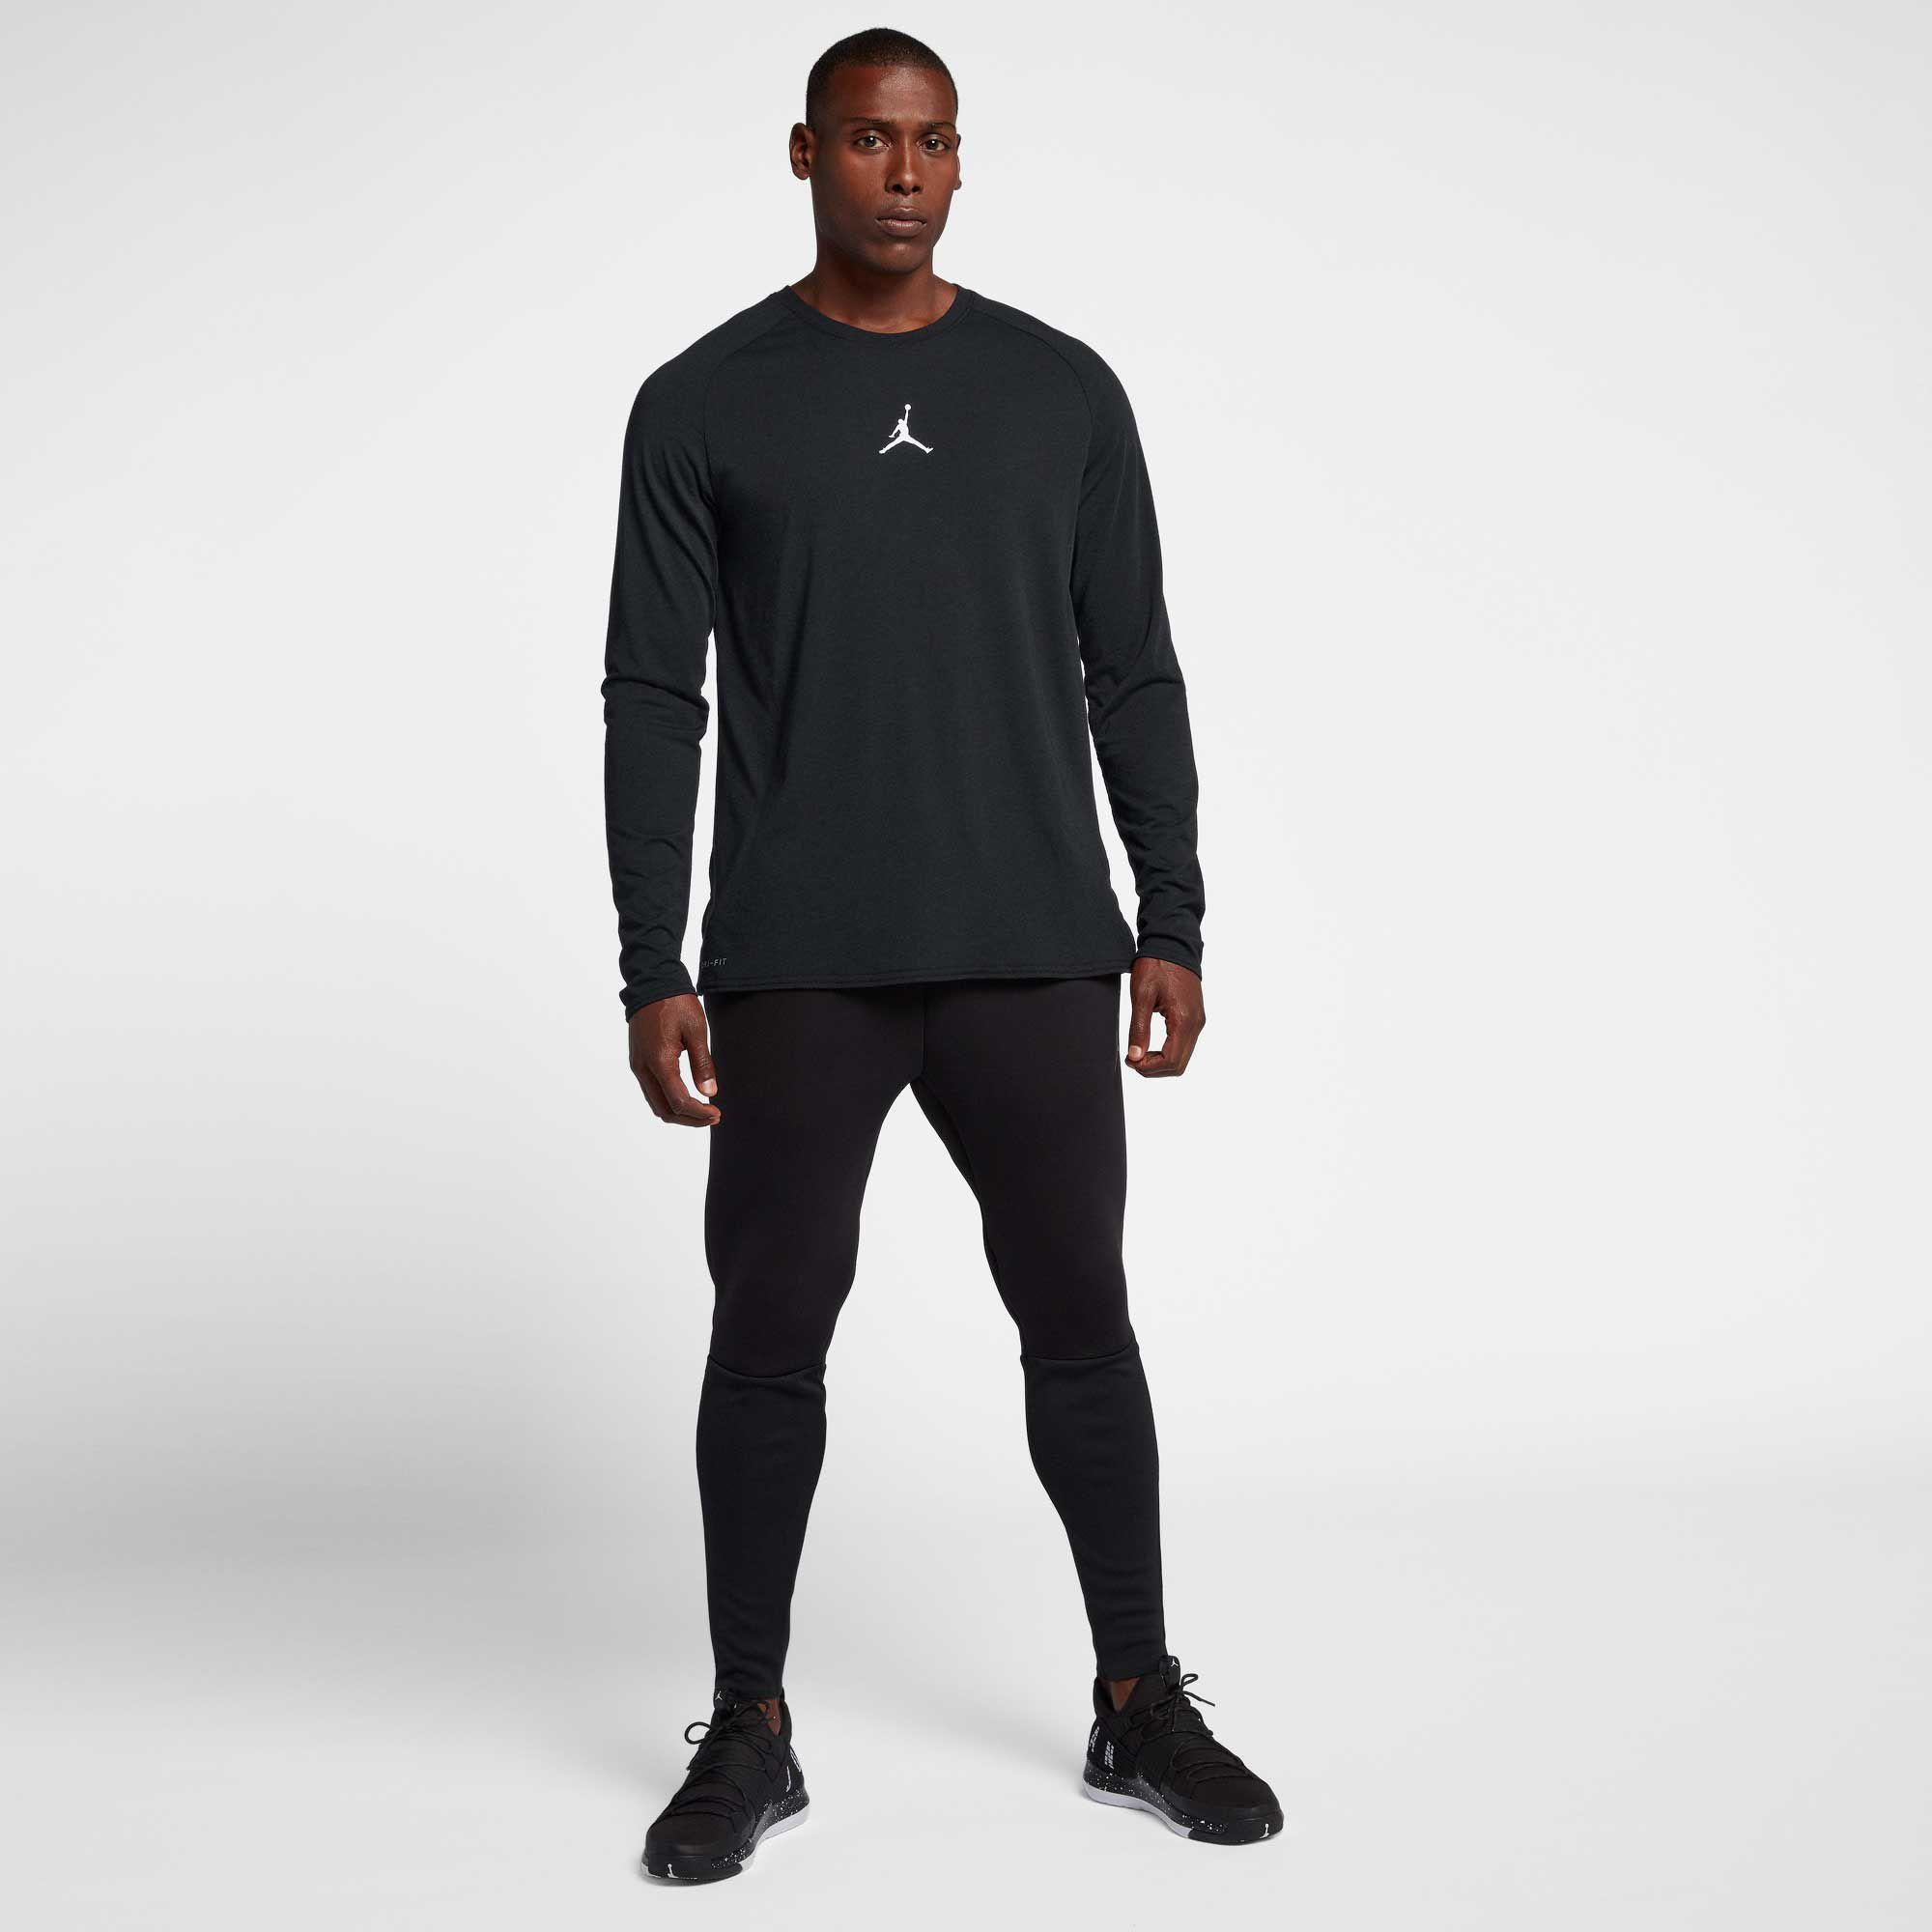 37af1e64ffd0 Nike - Black Dry 23 Alpha Long Sleeve Shirt for Men - Lyst. View fullscreen